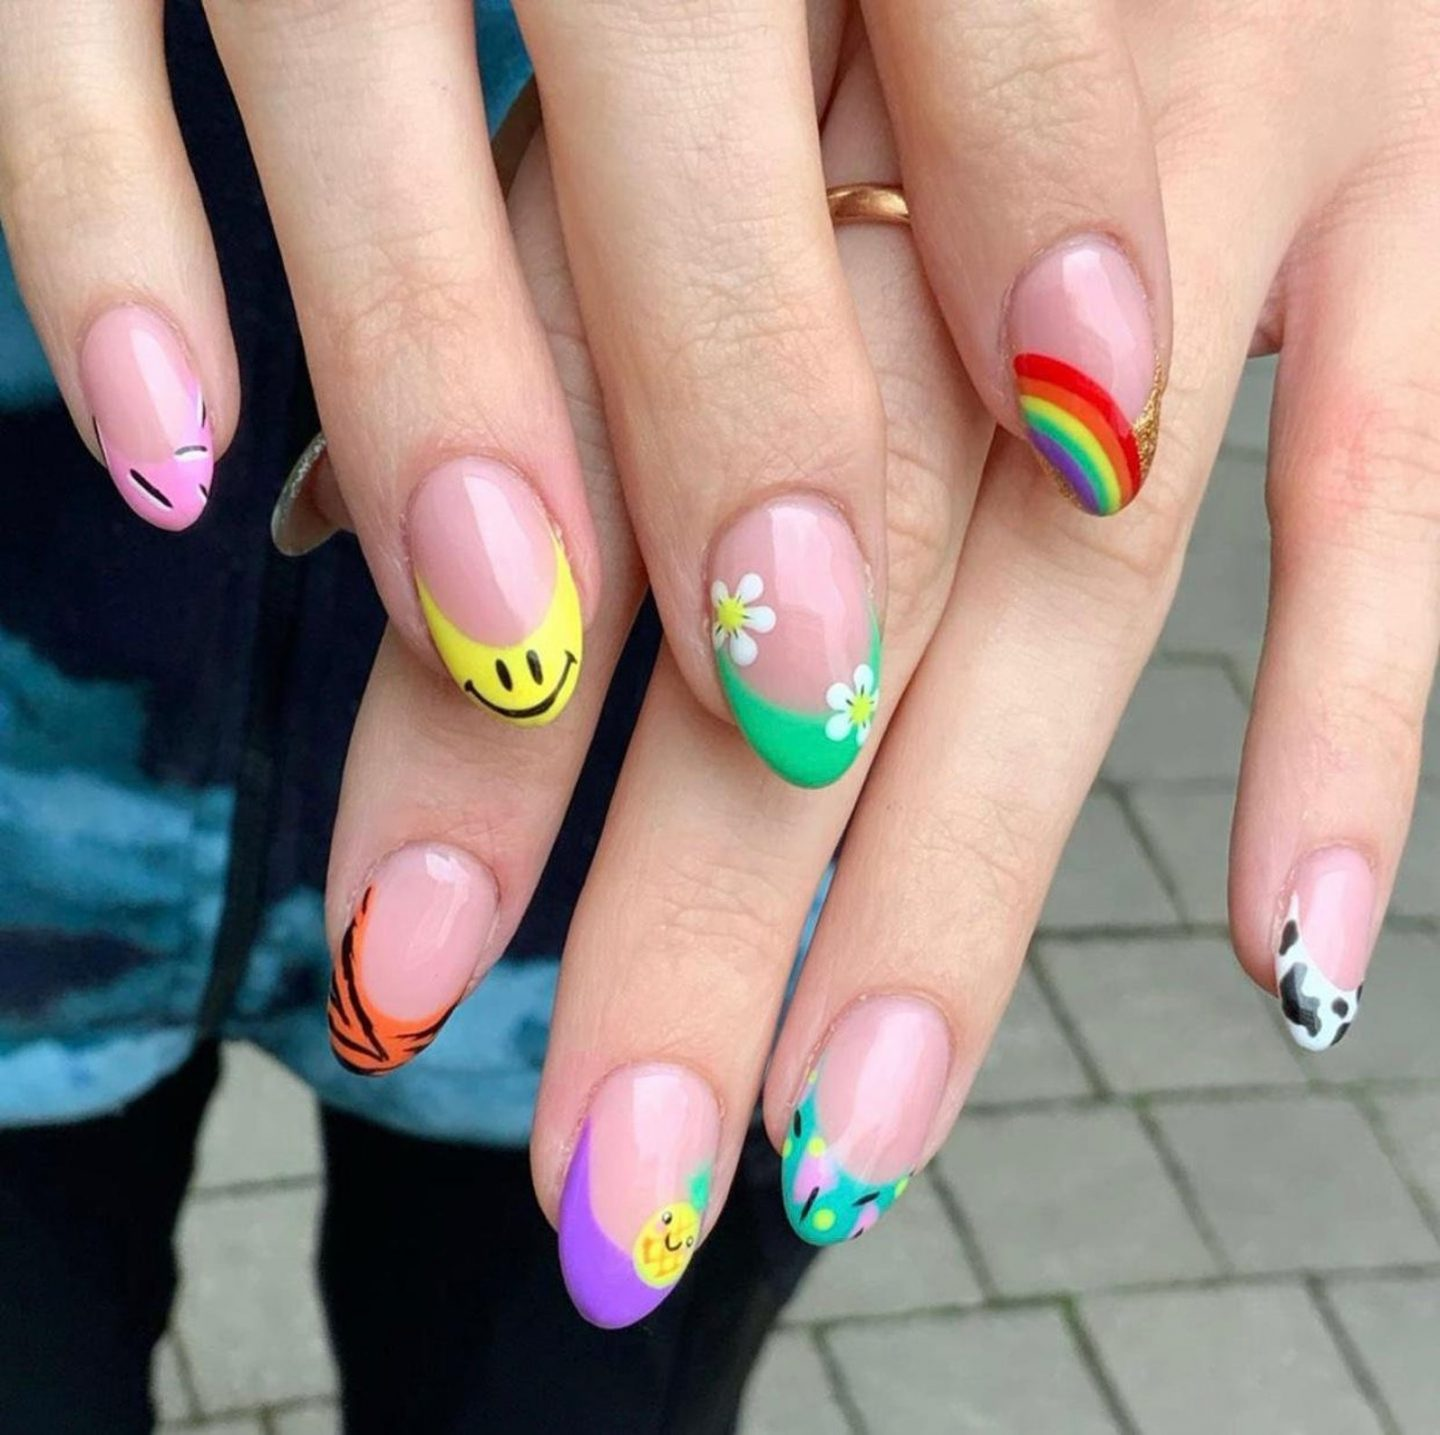 Colorful rainbow and smiley face nail art